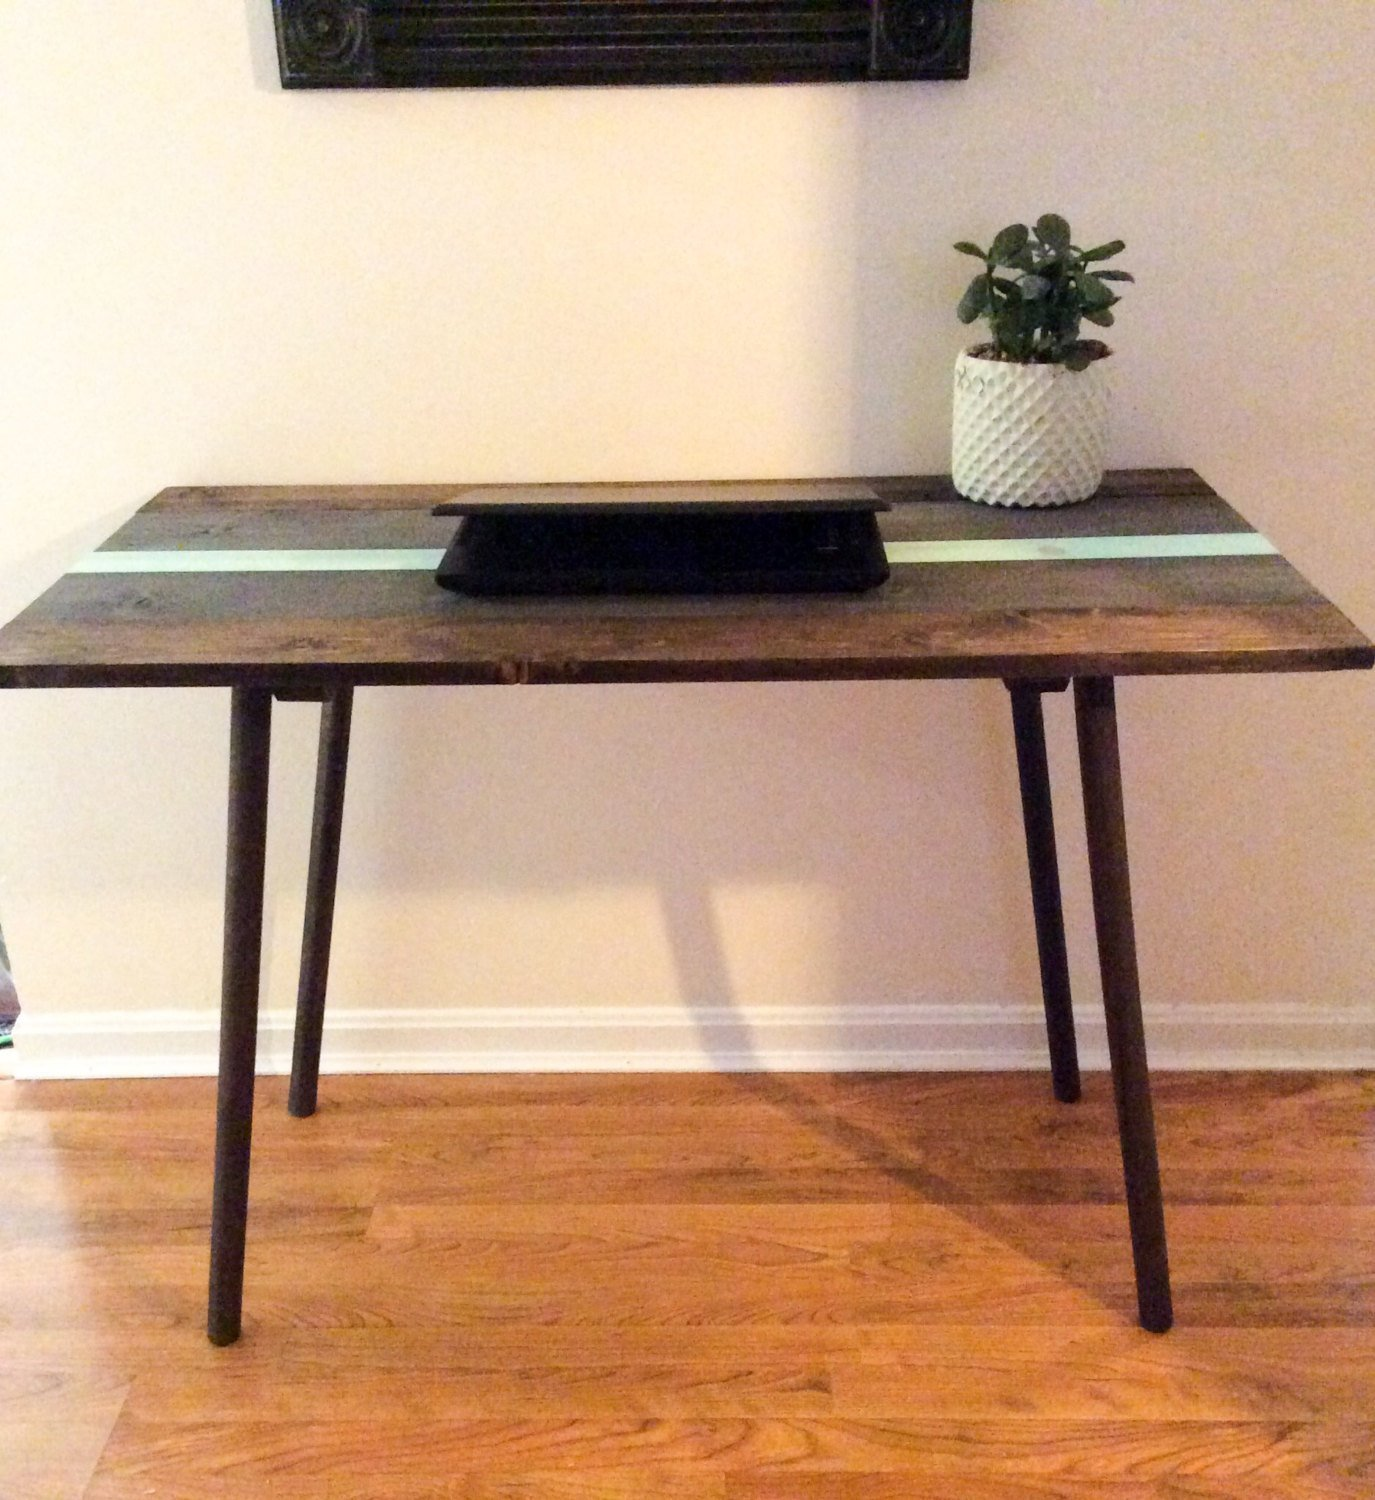 Mid century modern wood desk with angled legs, colorful laptop desk, striped wooden desk, solid wood